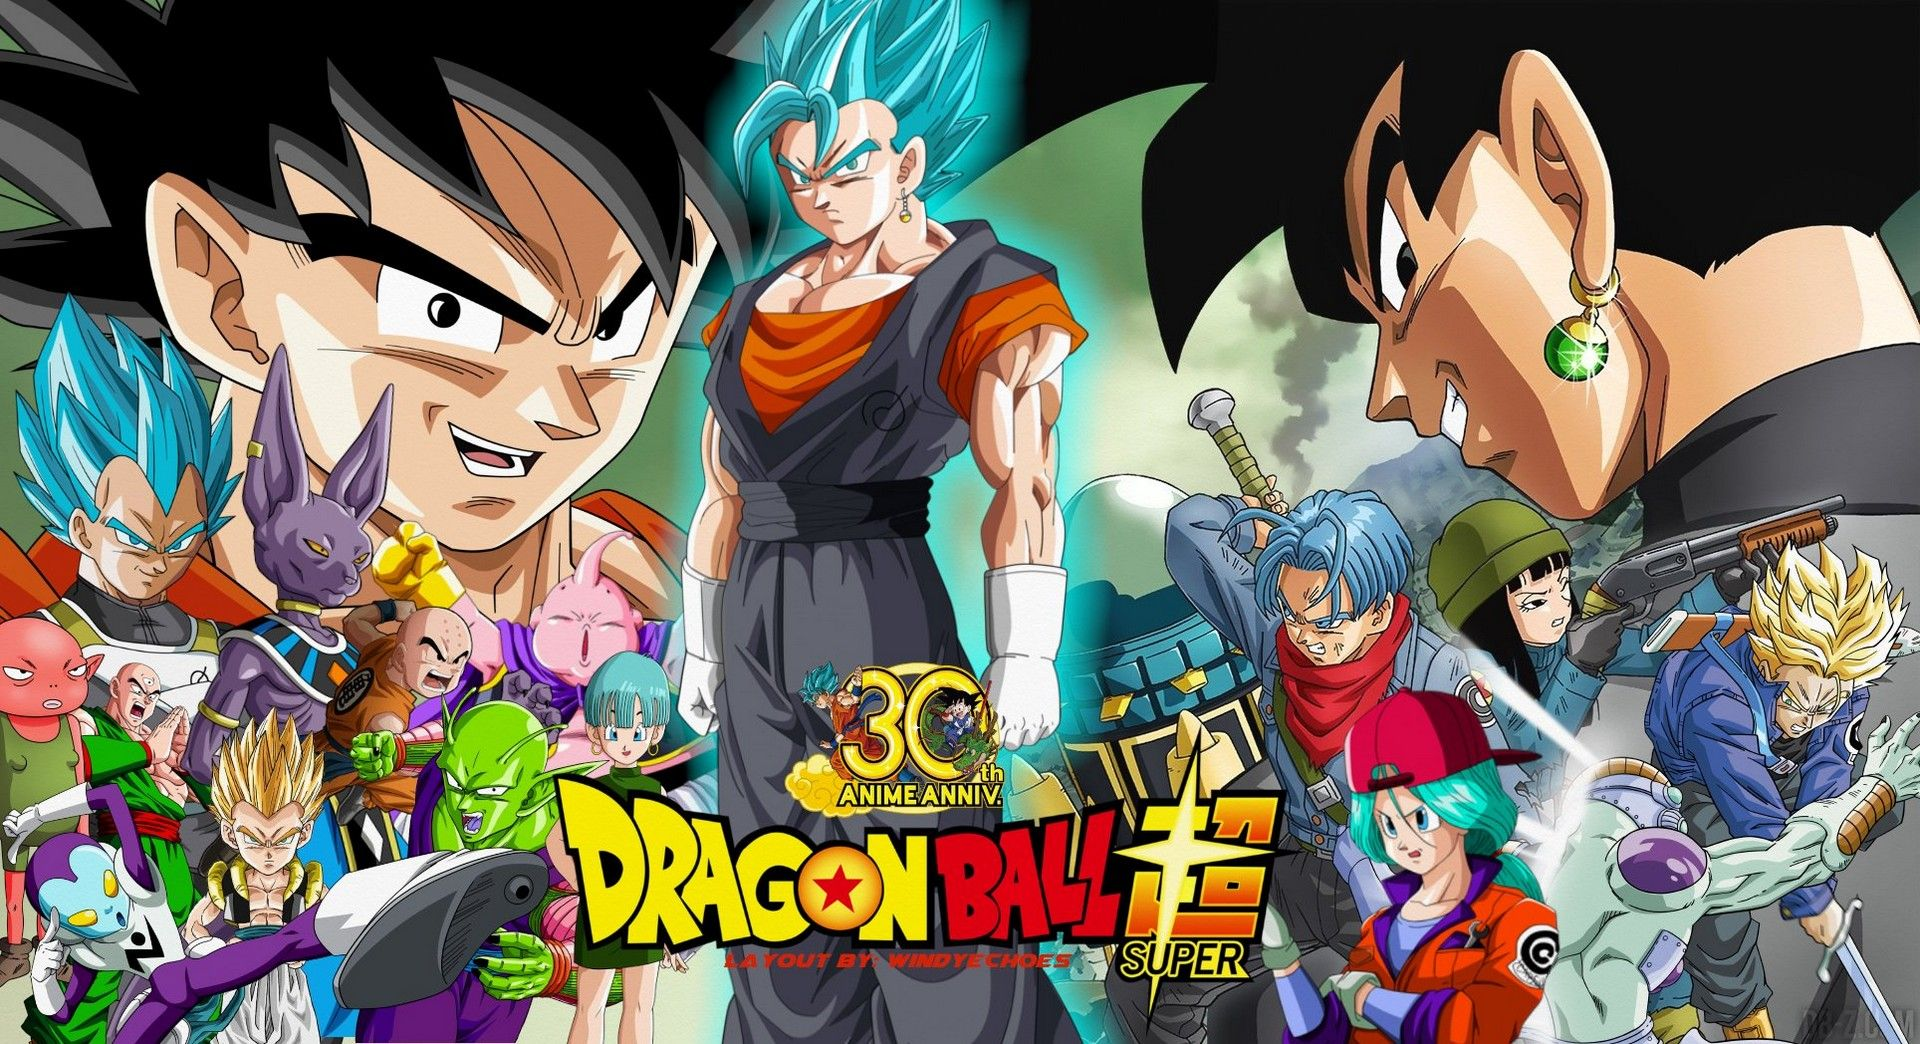 Dragon Ball Super Wallpaper Hd Dragon Ball Dragon Ball Z